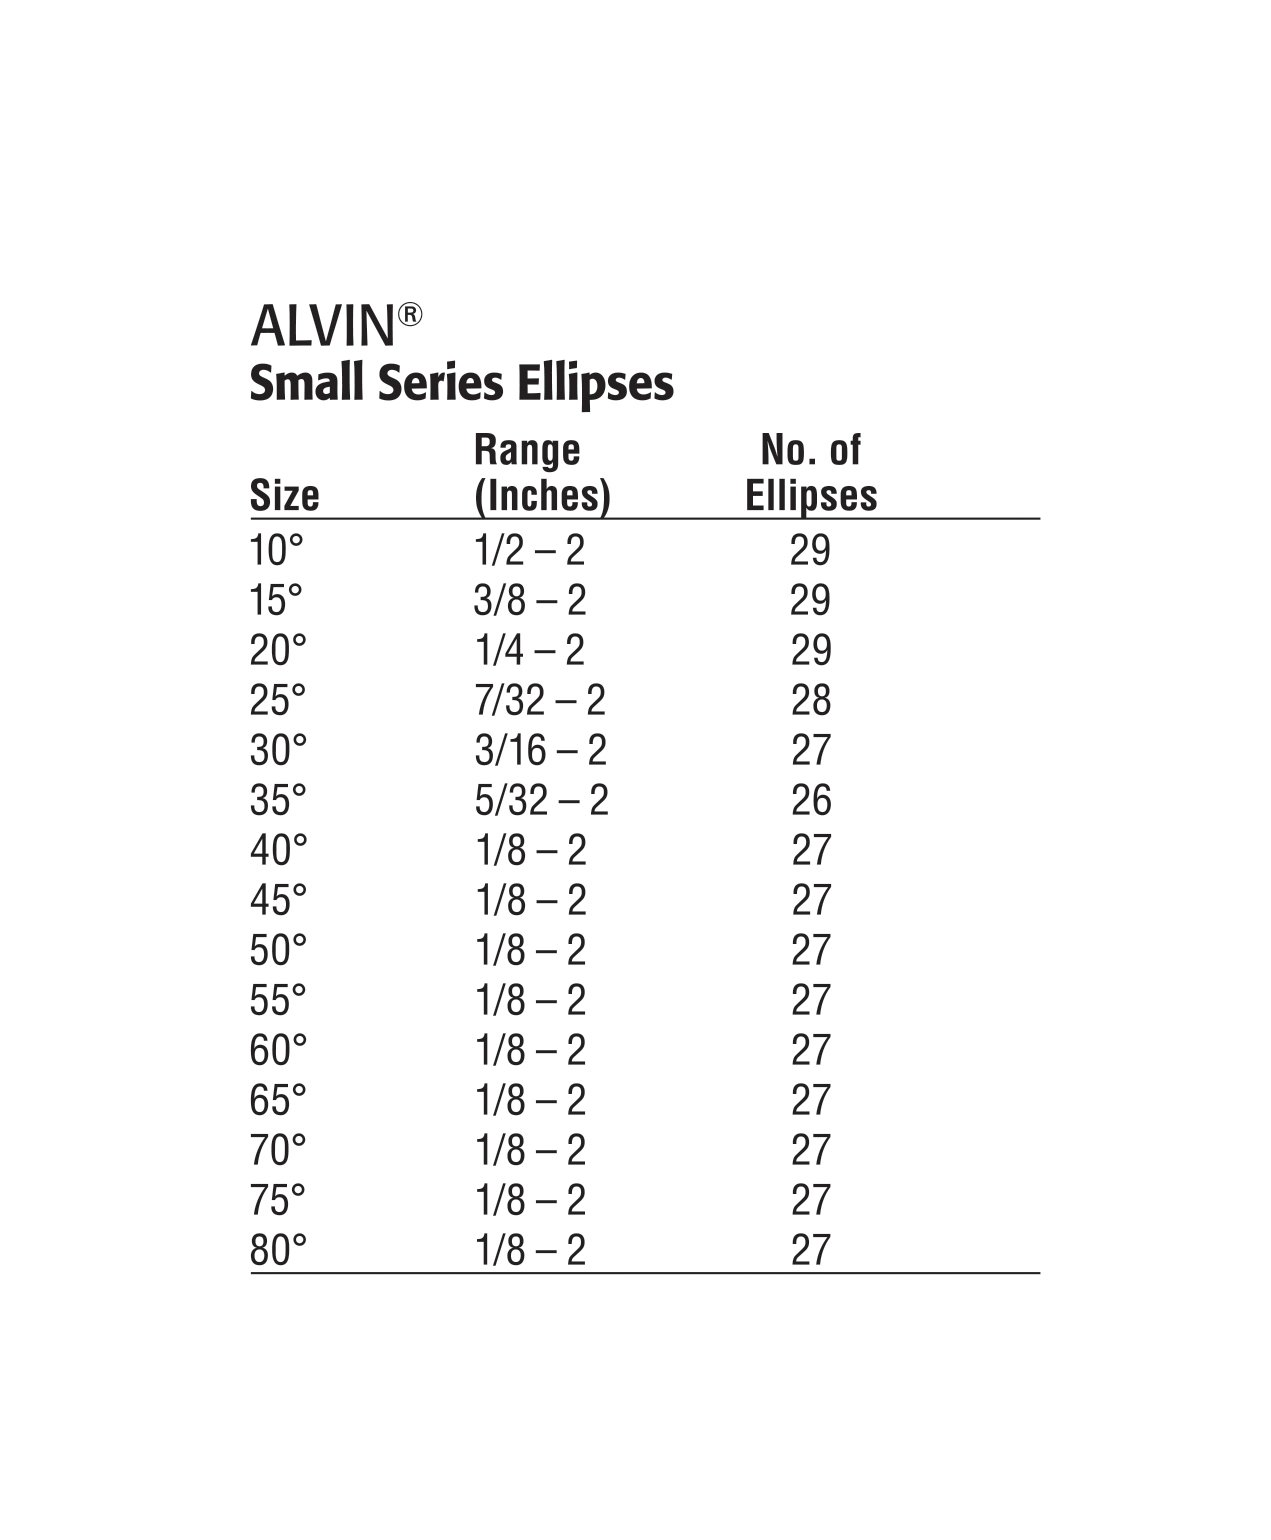 Alvin 3902-02 Small Series Ellipse Set of 15